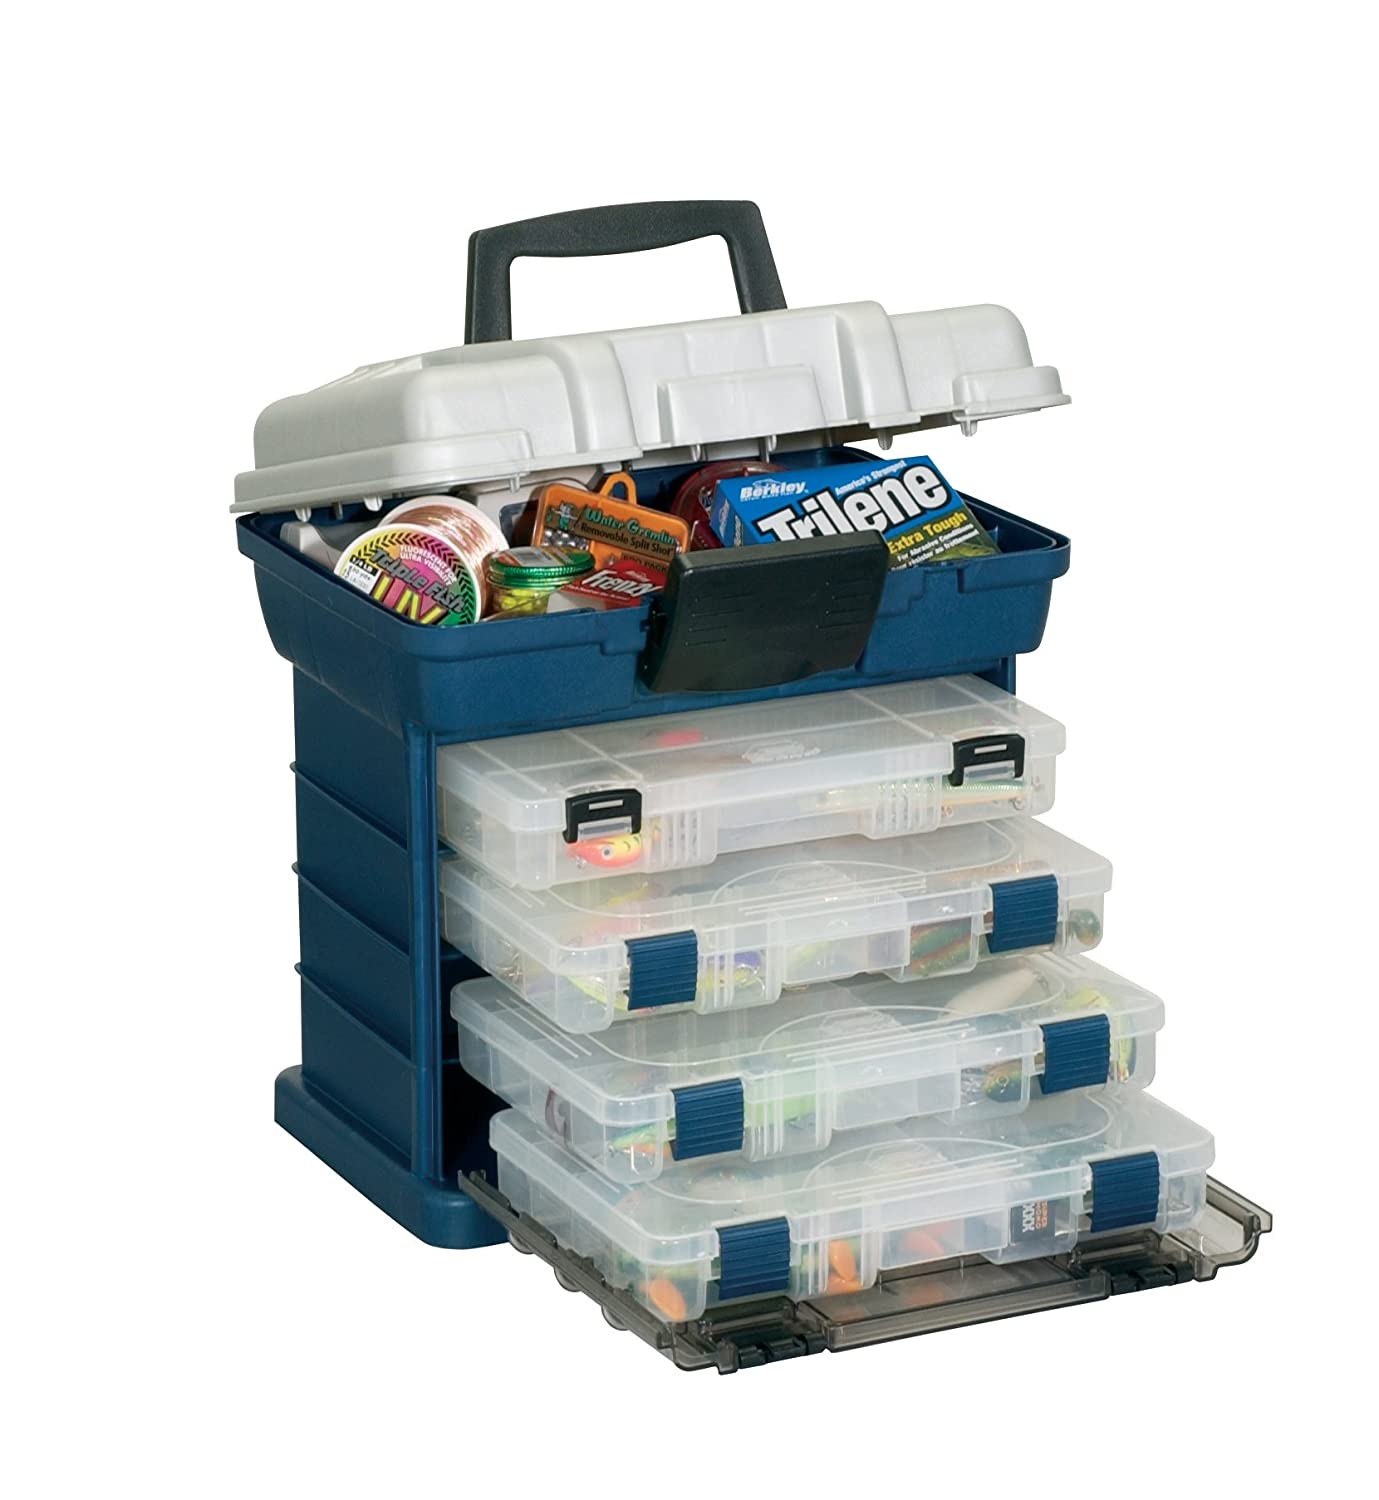 Plano 1364 4 by rack system 3650 size tackle organizer for Plano fishing tackle boxes